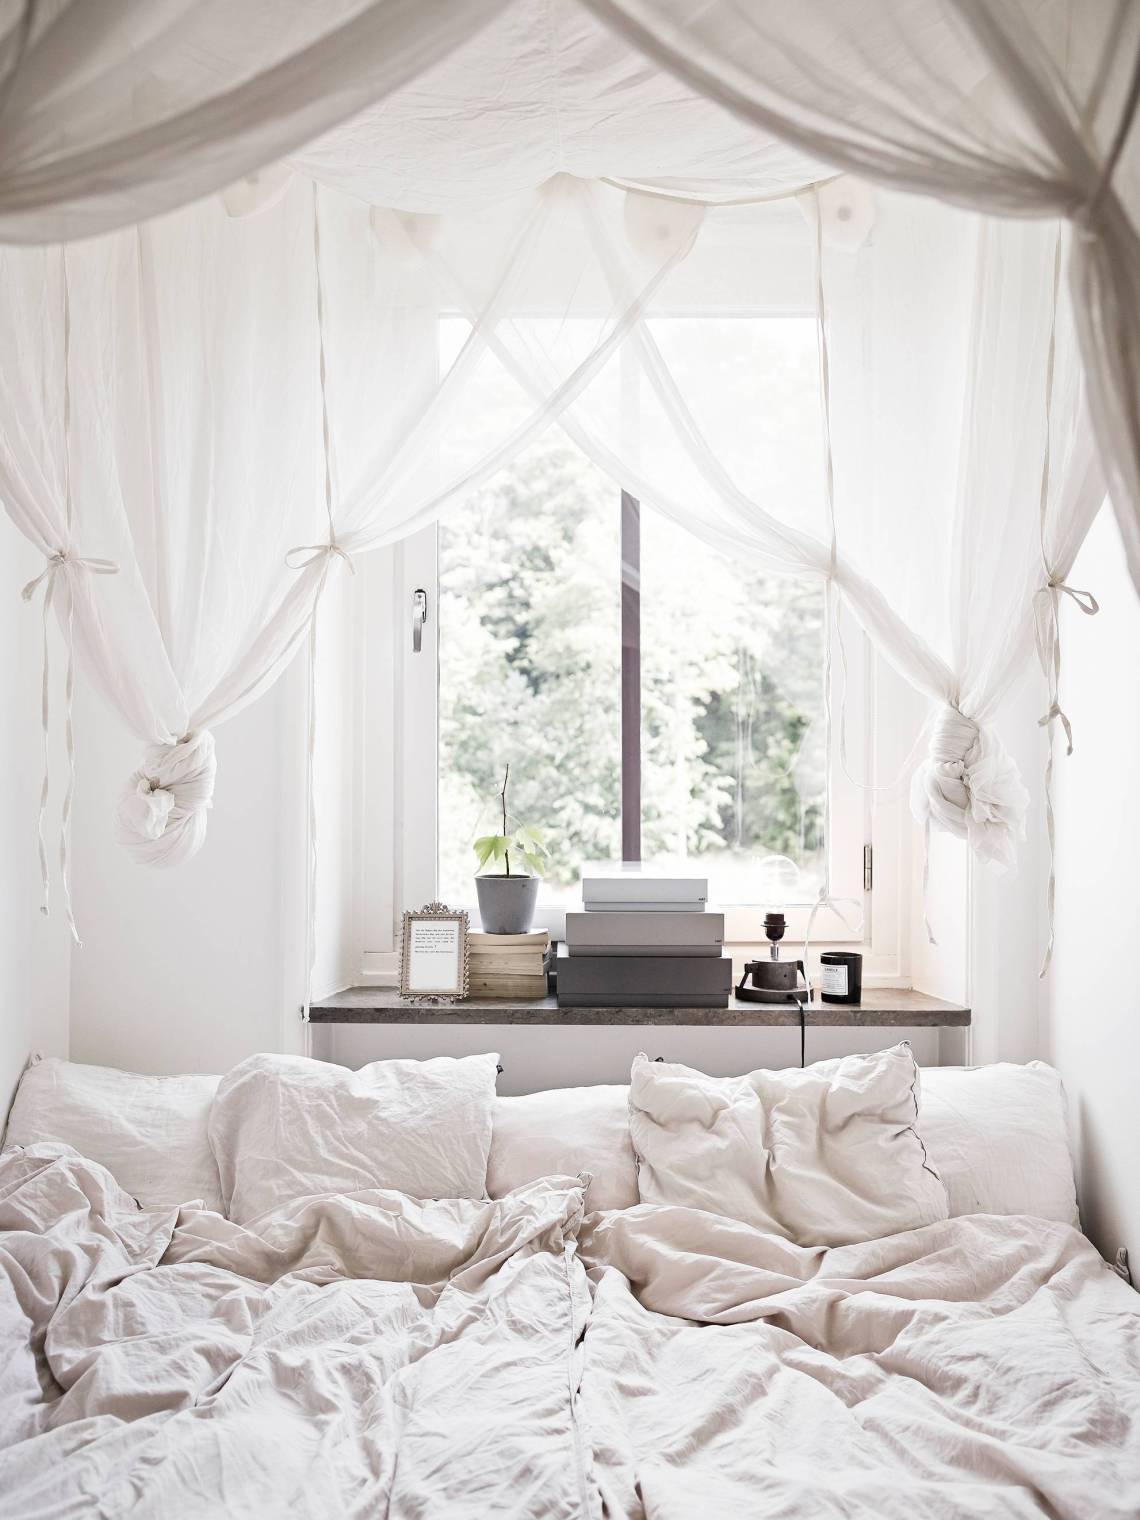 3 dreamy bedroom ceilings - via cocolapinedesign.com